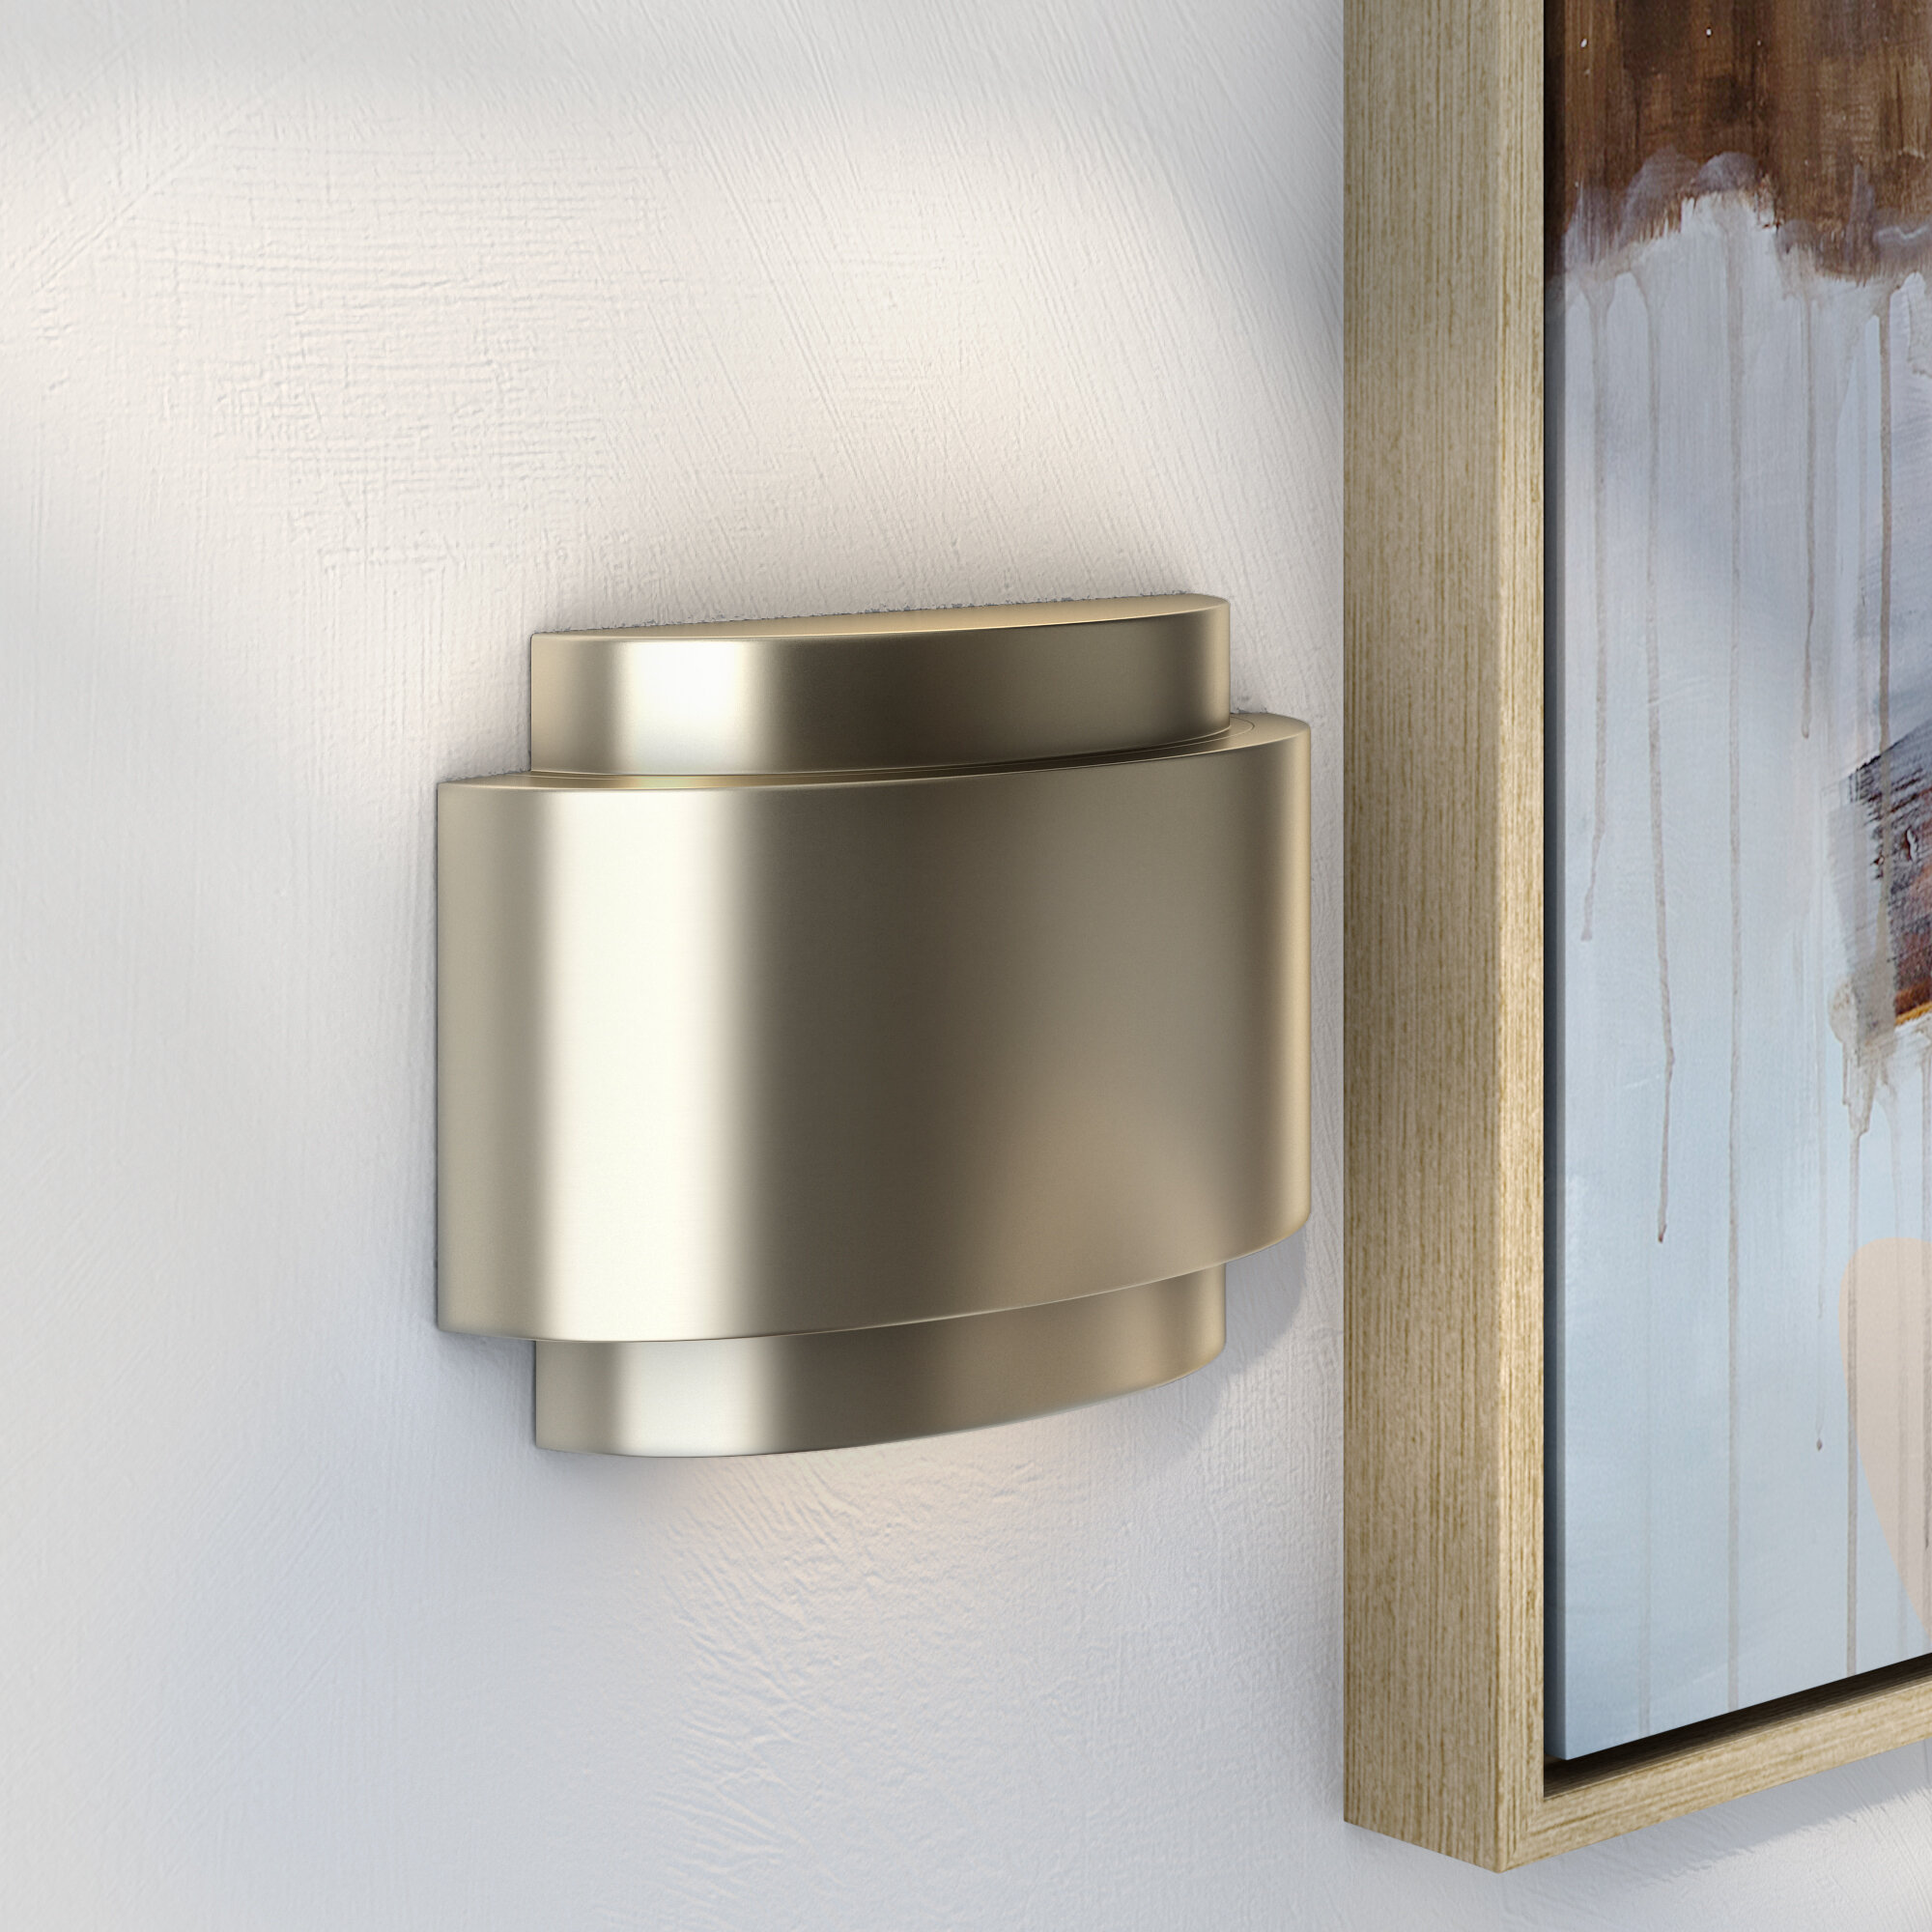 Decorative Doorbell Chimes Home Ideas